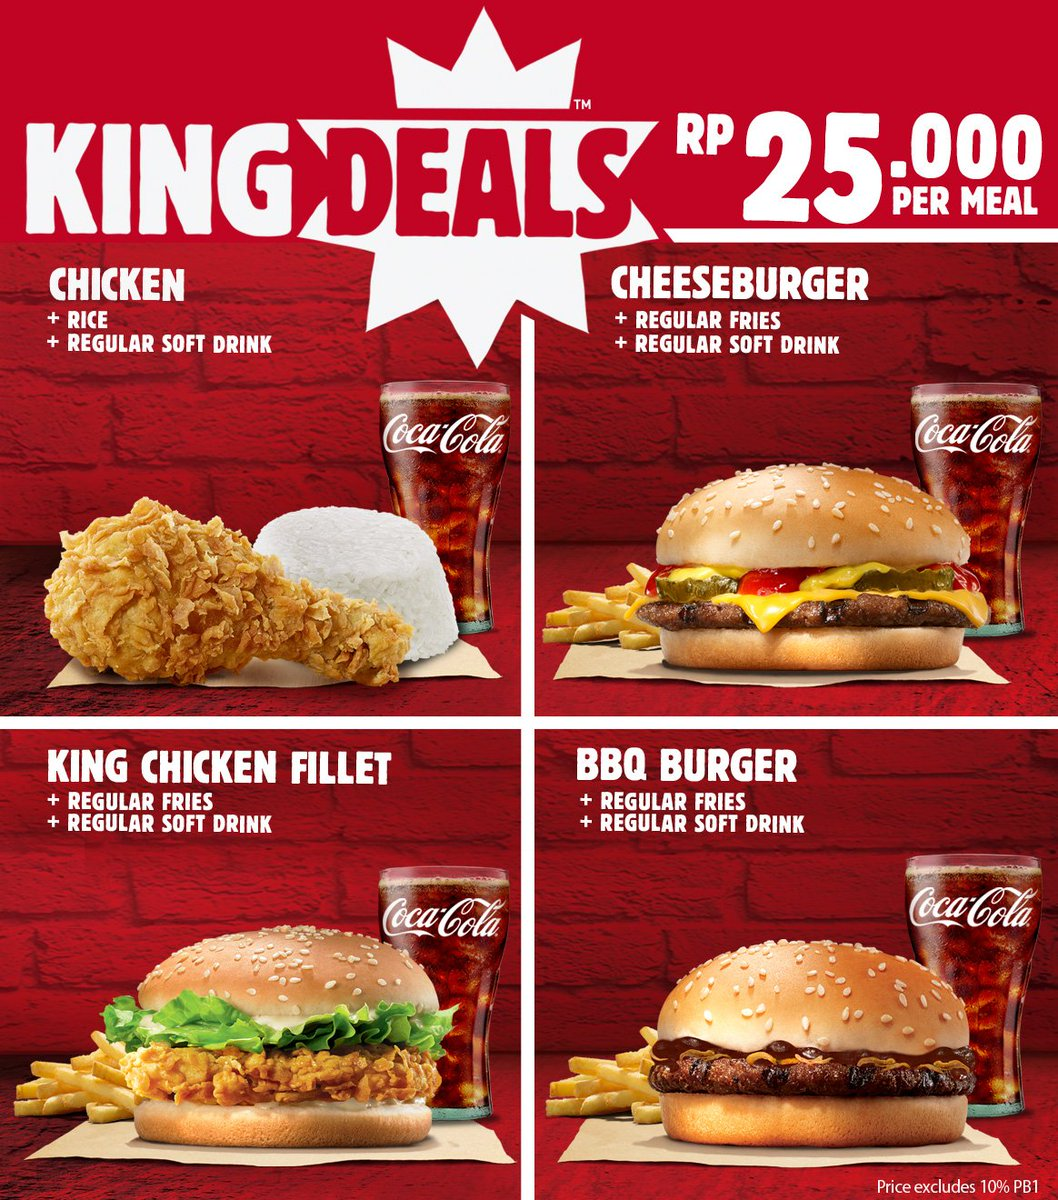 Burger King Introduces New $ King's Meal Deal Burger King offers a new value meal with the introduction of the new $ King's Meal Deal, which includes a choice of two burgers/sandwiches, an order of small fries, and a small drink for the price.